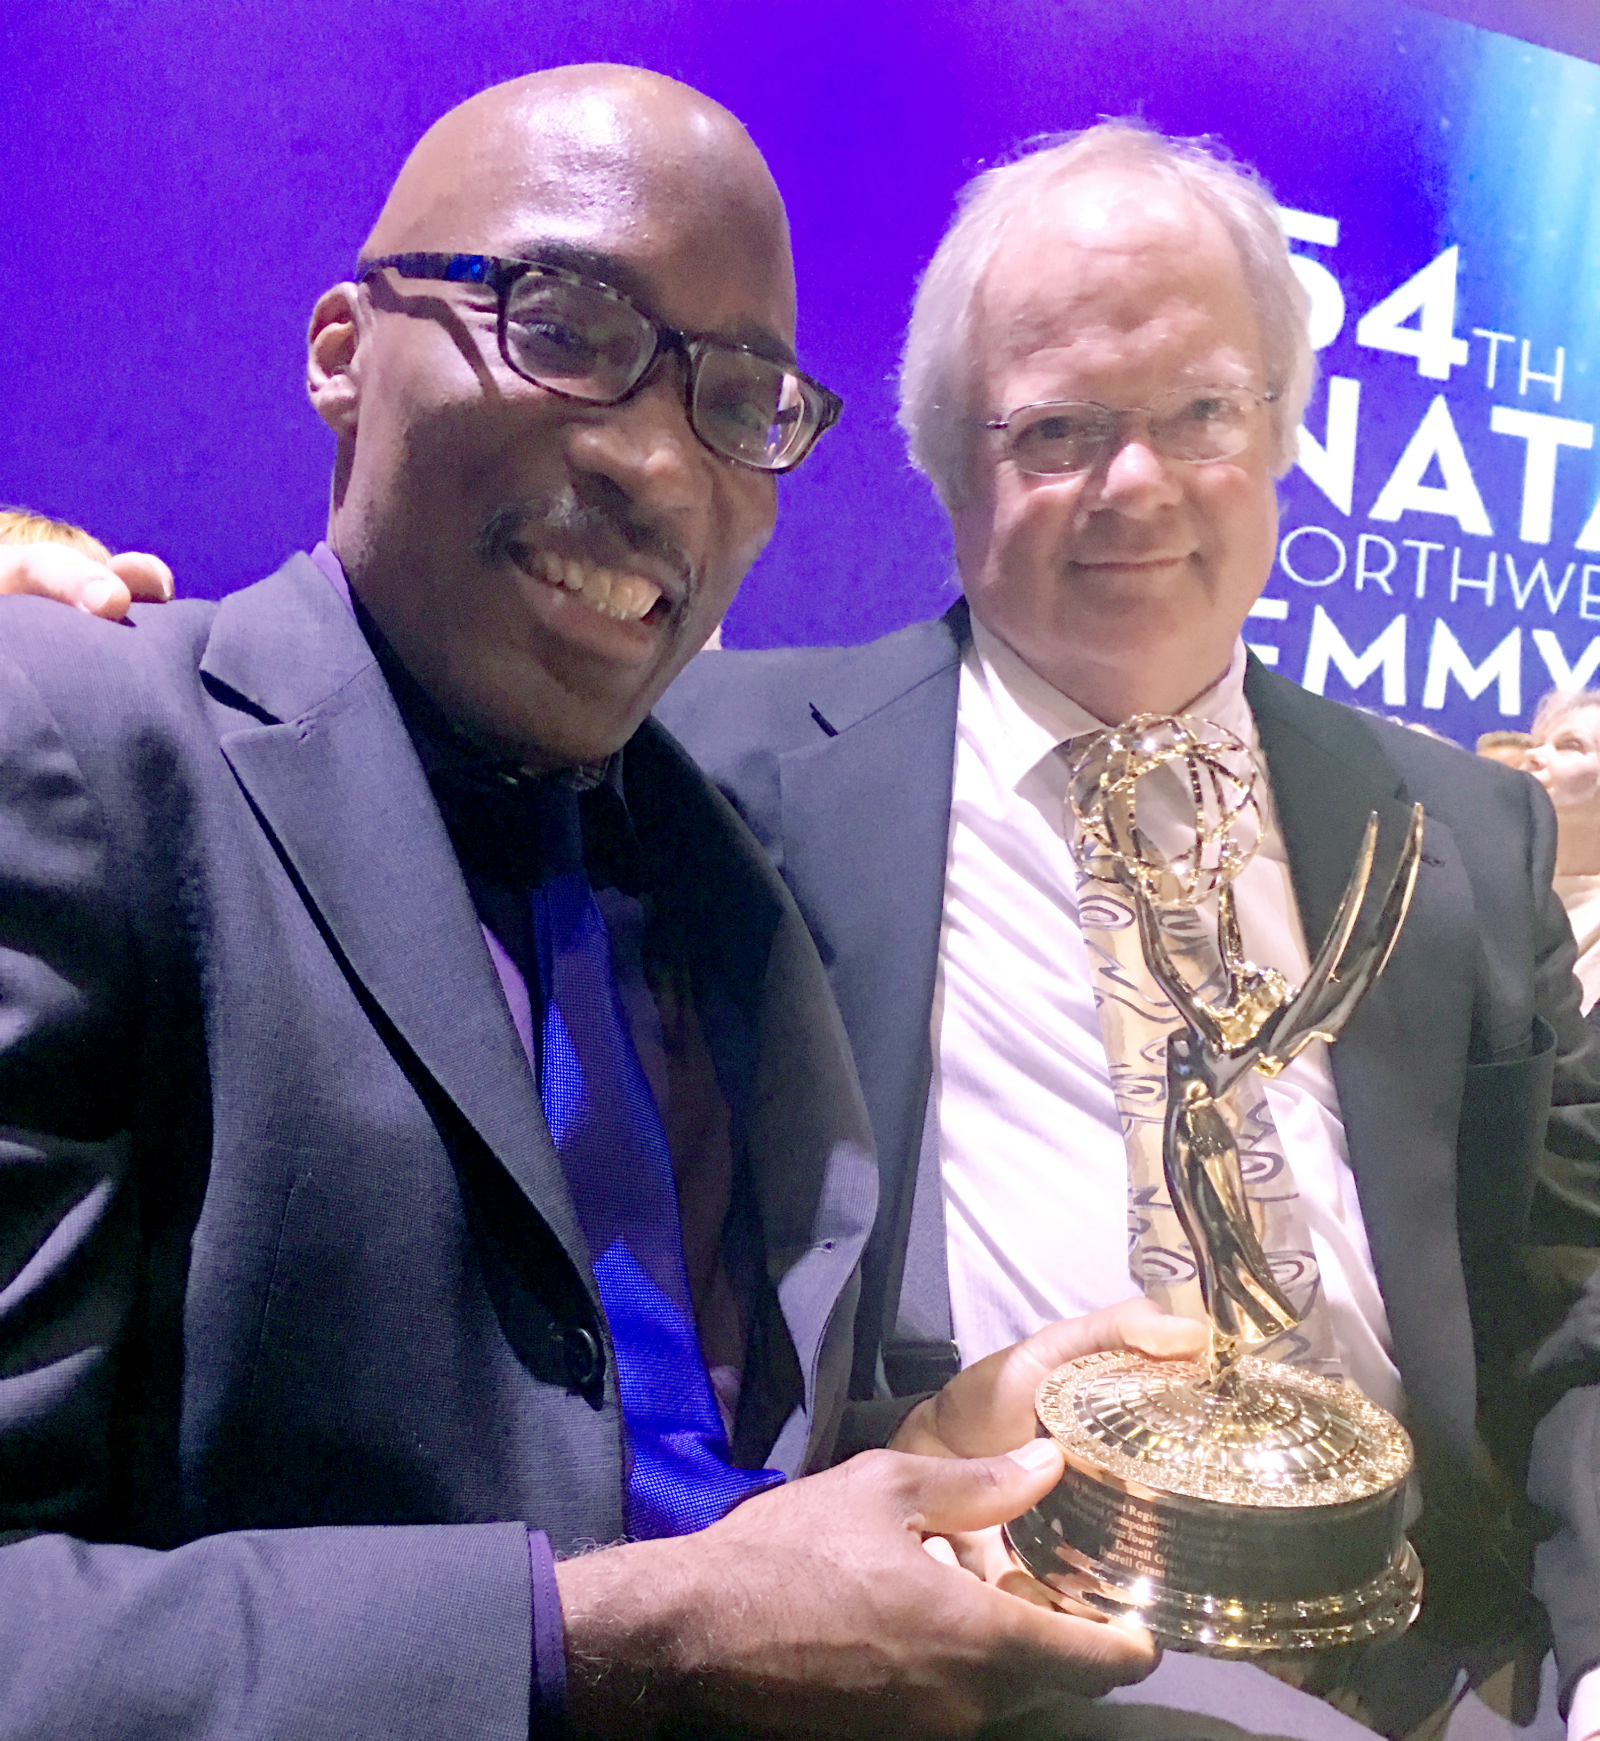 Darrell Grant and Eric Cain at the 54th Annual Northwest Regional Emmy Awards.